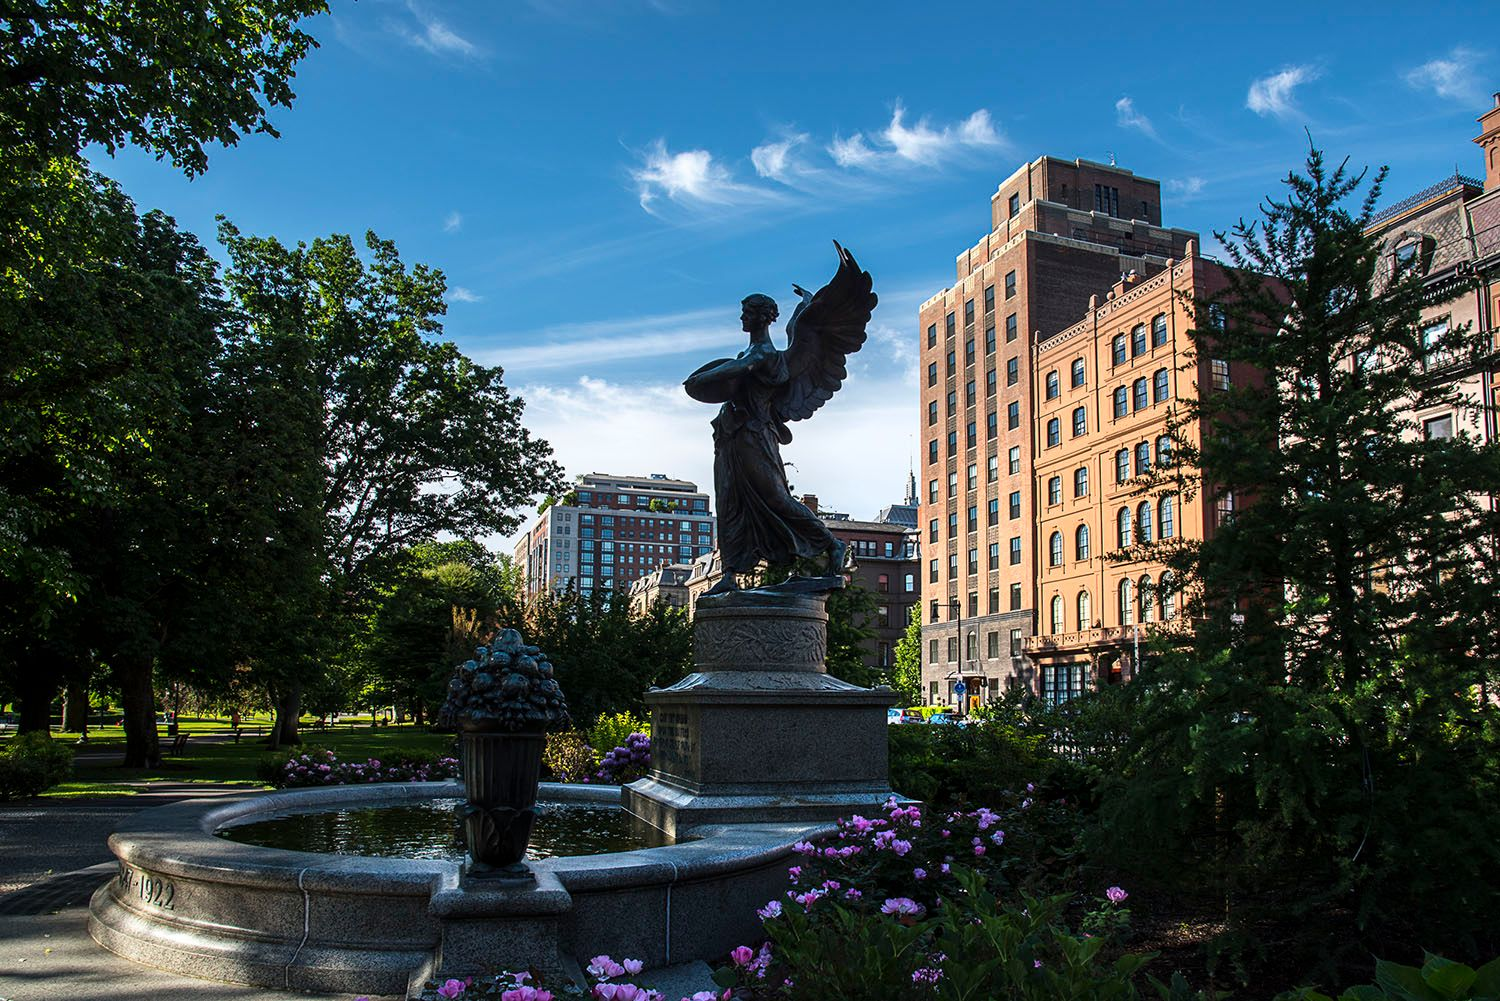 Angel Statue in Boston Gardens